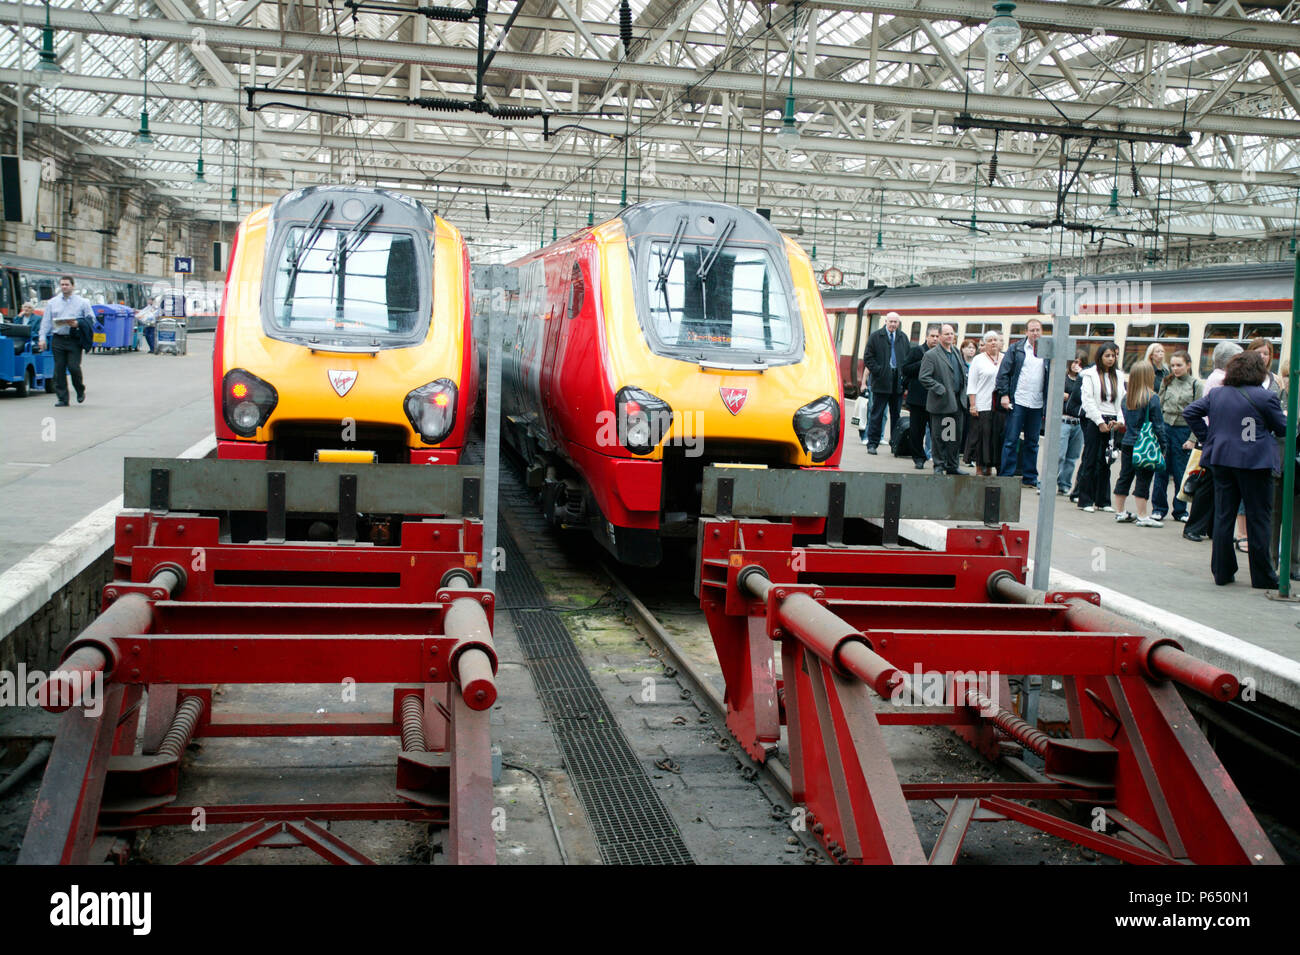 A brace of Virgin Voyagers stand at the buffer stops at Glasgow Central station. June 2005 - Stock Image